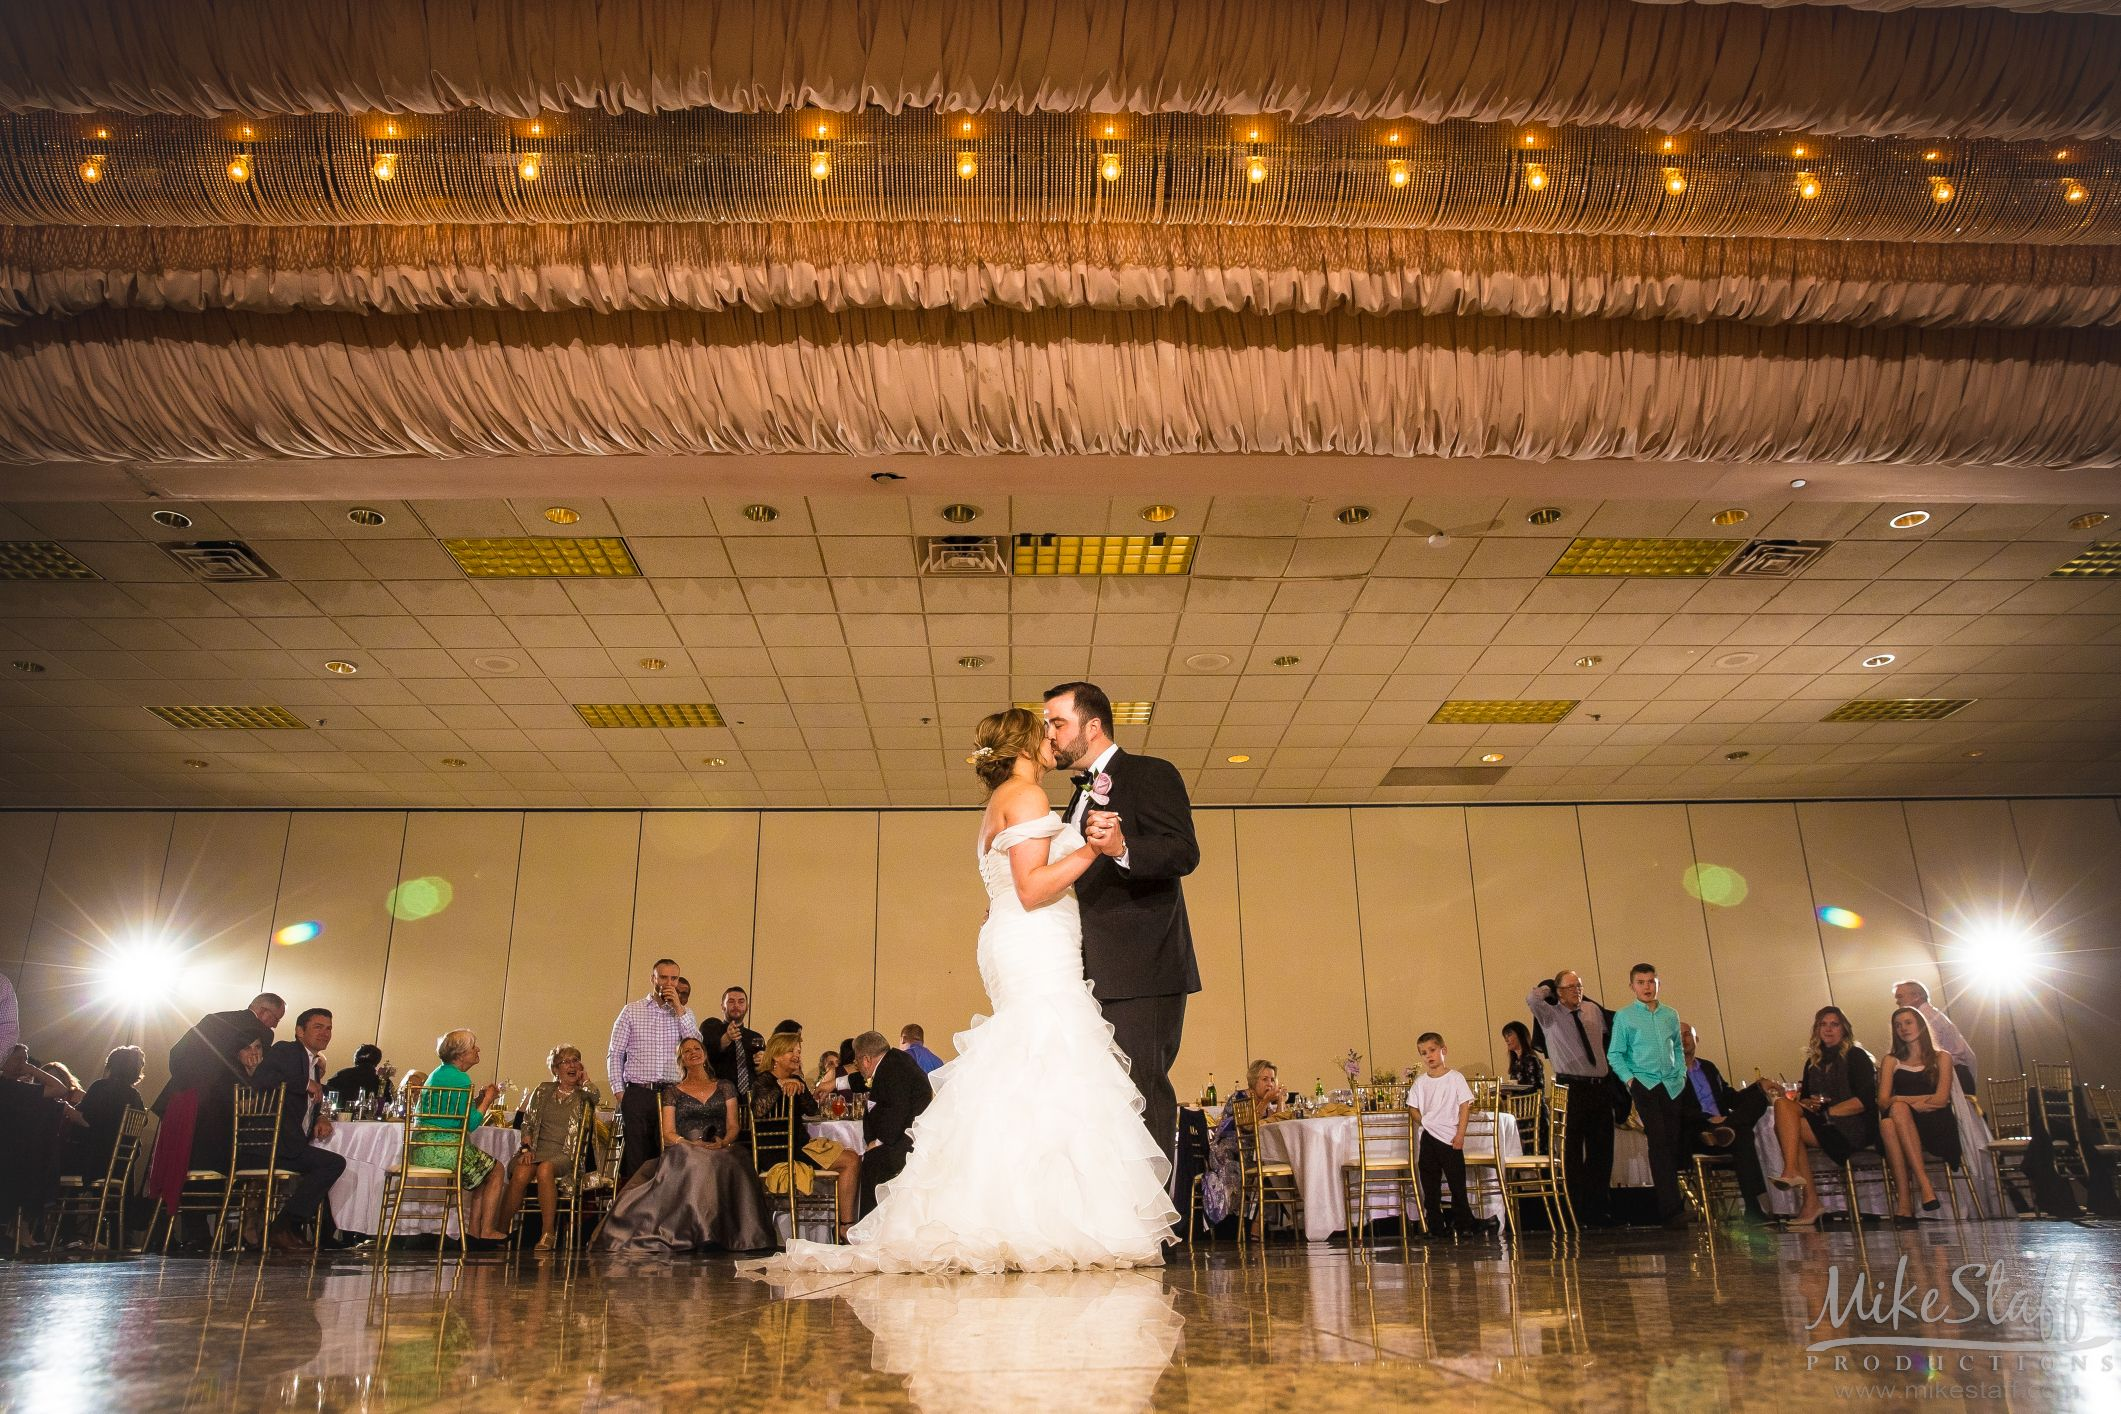 Have You Read How To Hire A Great Dj Wedding Reception Music Wedding Reception Photography Michigan Wedding Reception